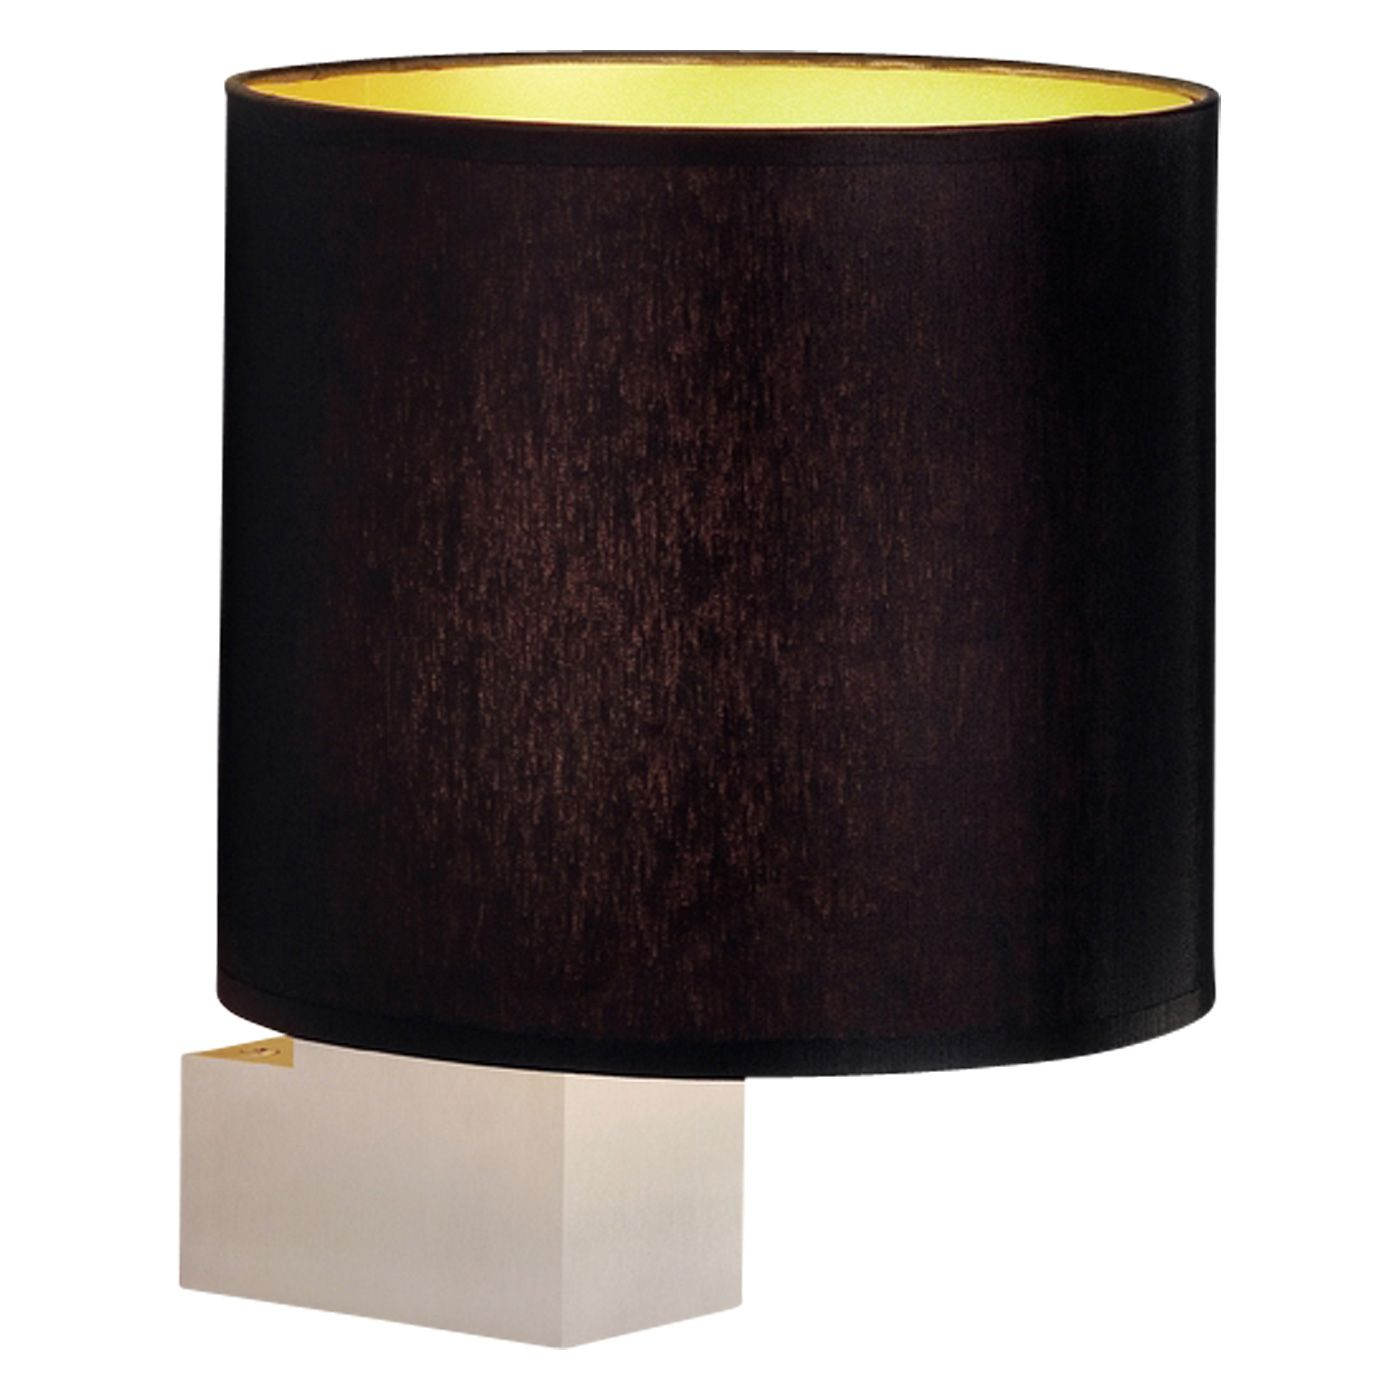 Gold Foyer Lighting : Delta light foyer black gold wall lights buy at eu